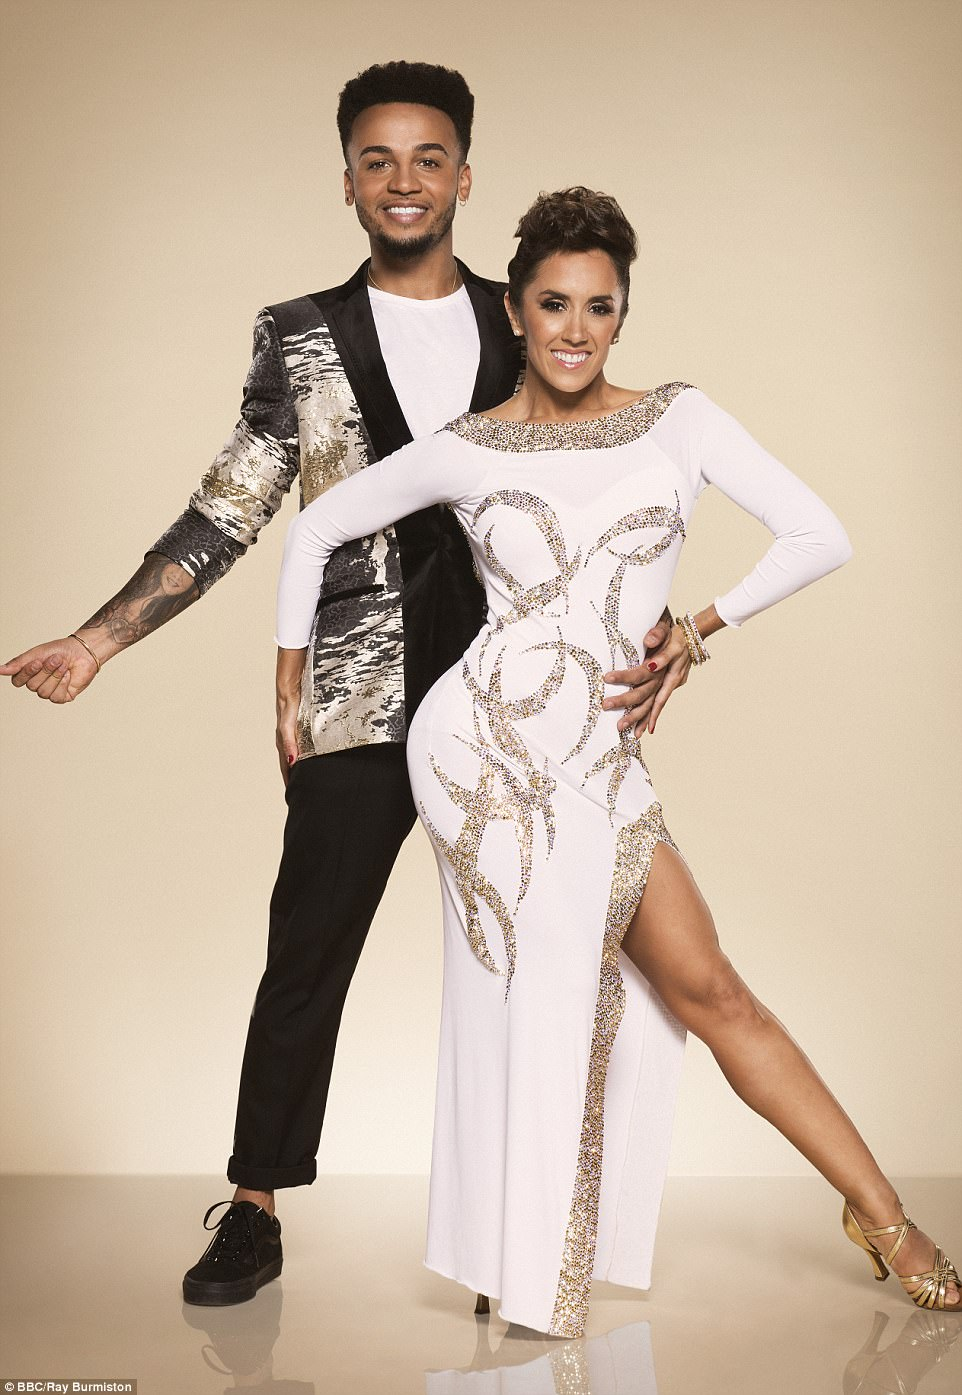 Cool kid:Boyband star Aston Merrygold added a trendy touch to the shoot in a striking metallic blazer, as he cut a cool figure clicking for the camera beside his leggy gown-clad partner Janette Manrara